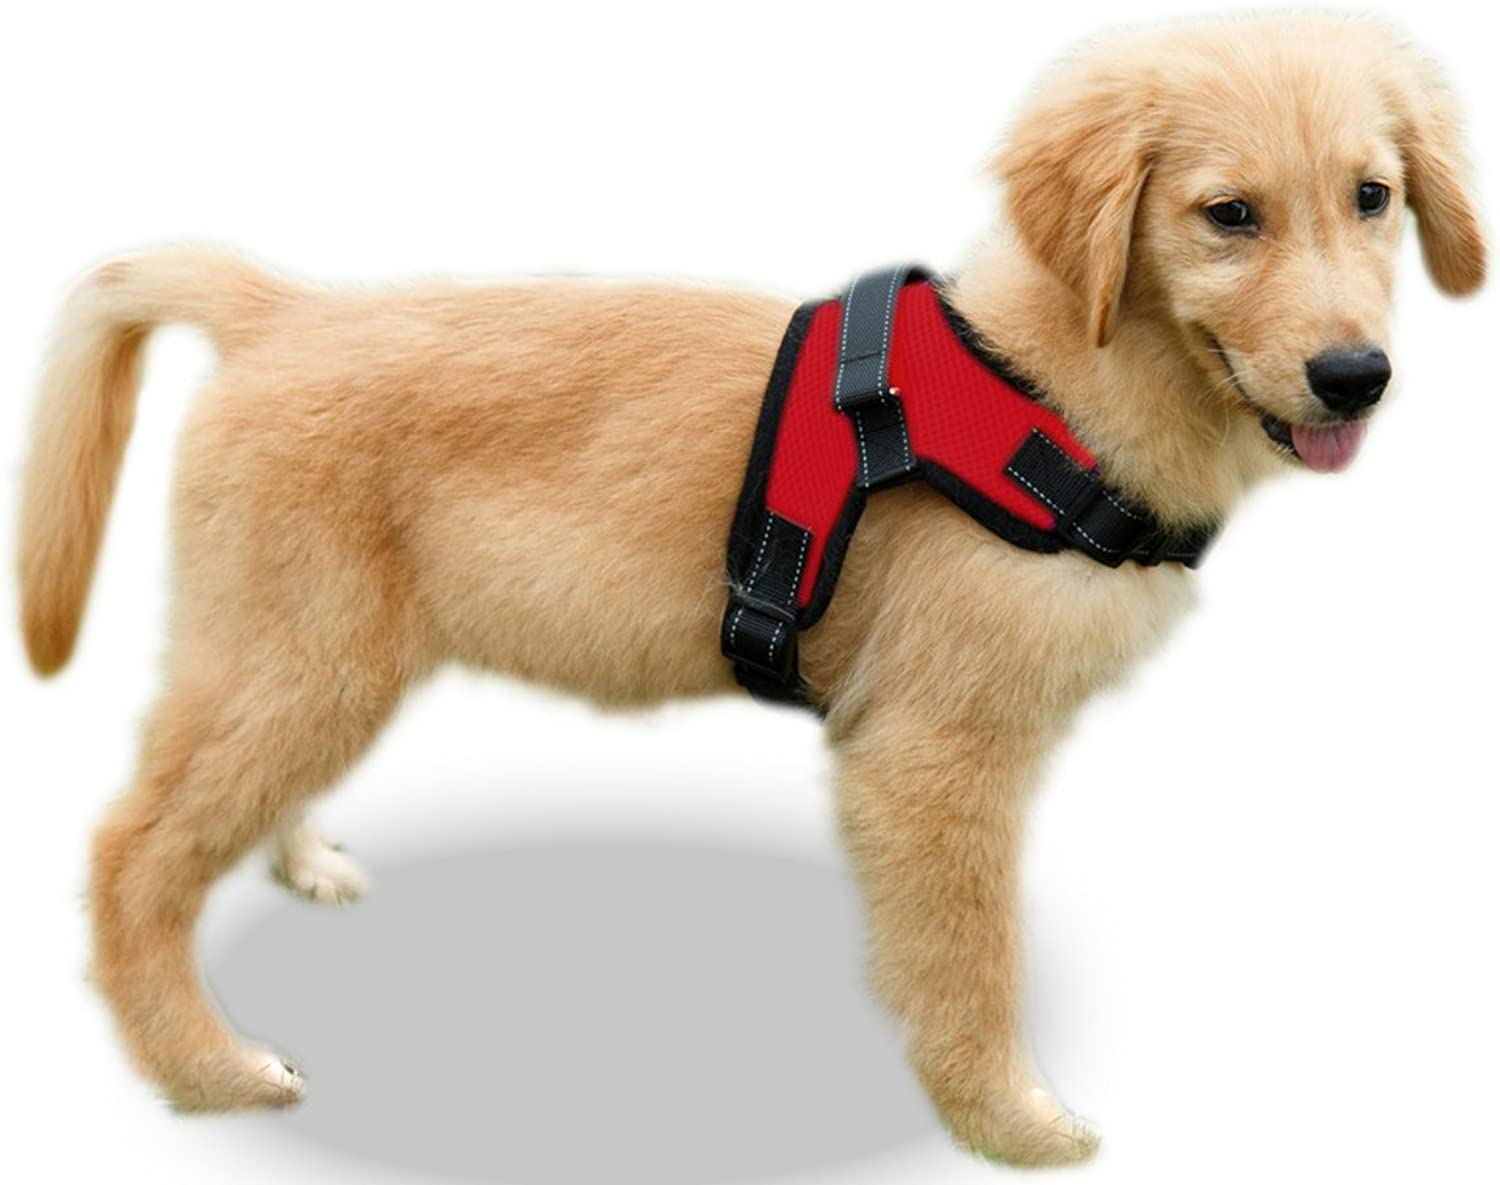 Copatchy No Pull Reflective Adjustable Dog Harness with Handle (Large Red)